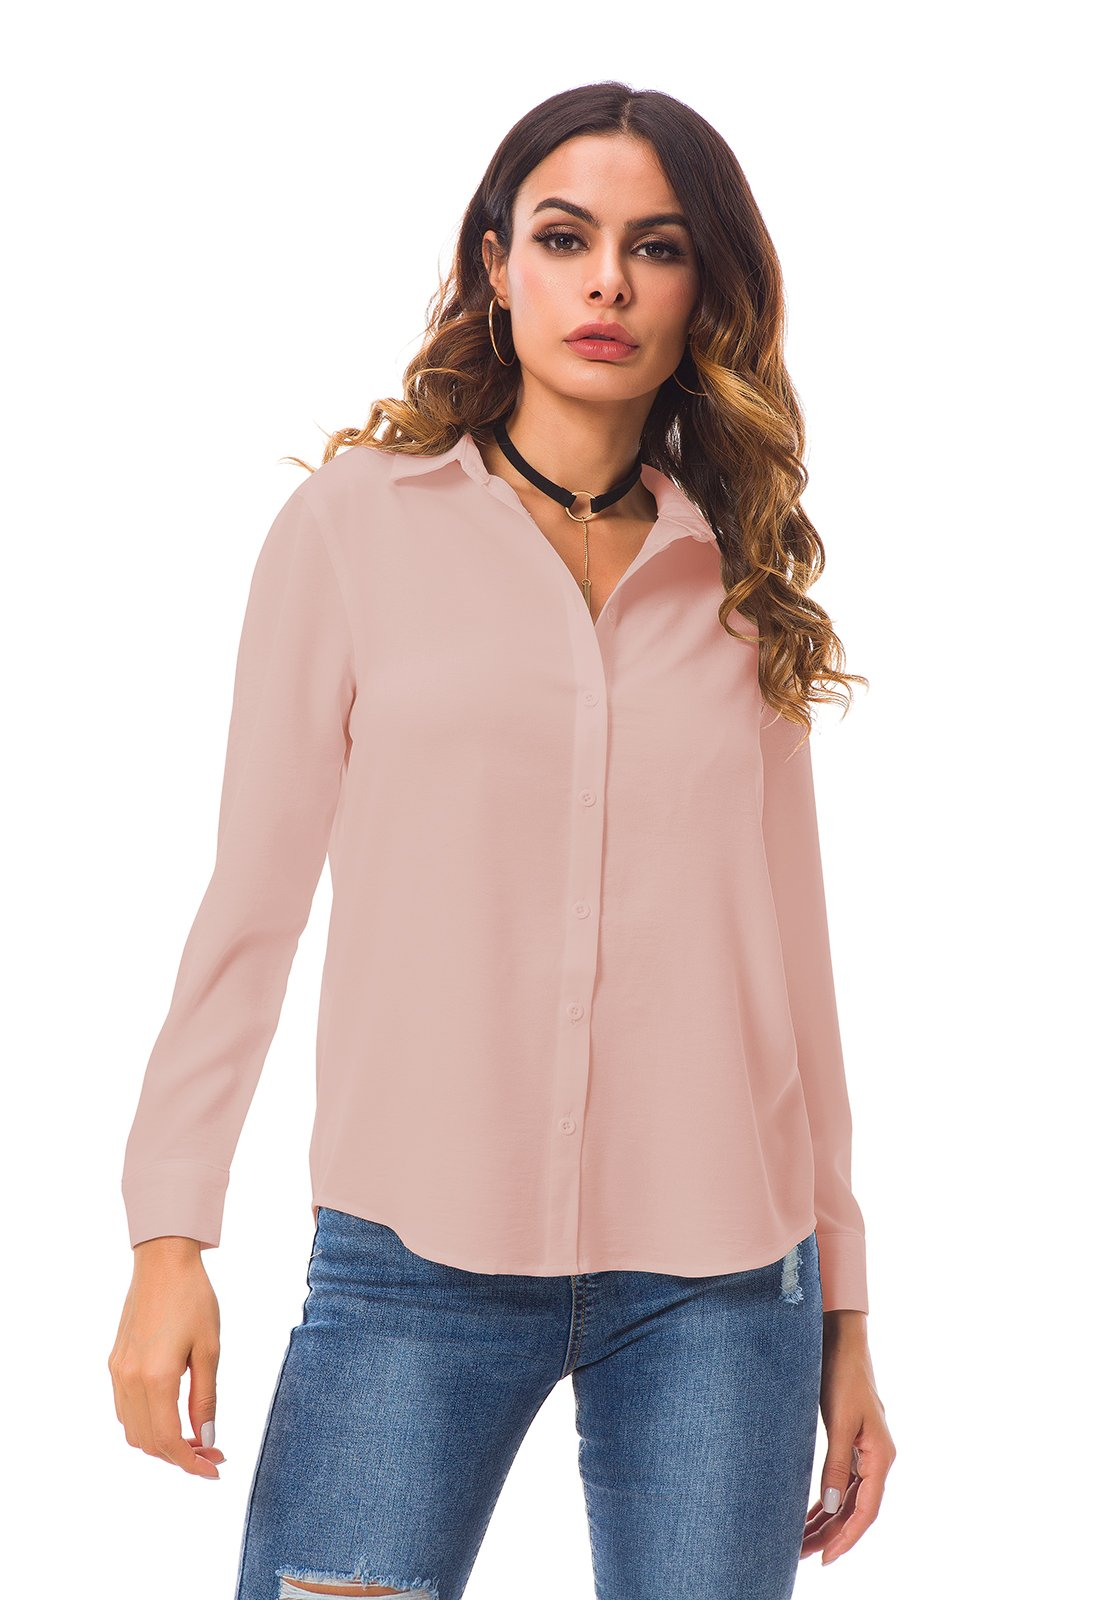 ویکالا · خرید  اصل اورجینال · خرید از آمازون · Tsher Women's Long Sleeve Shirt Loose Casual Professional Button Blouse for Women x5005 (M, Pink) wekala · ویکالا